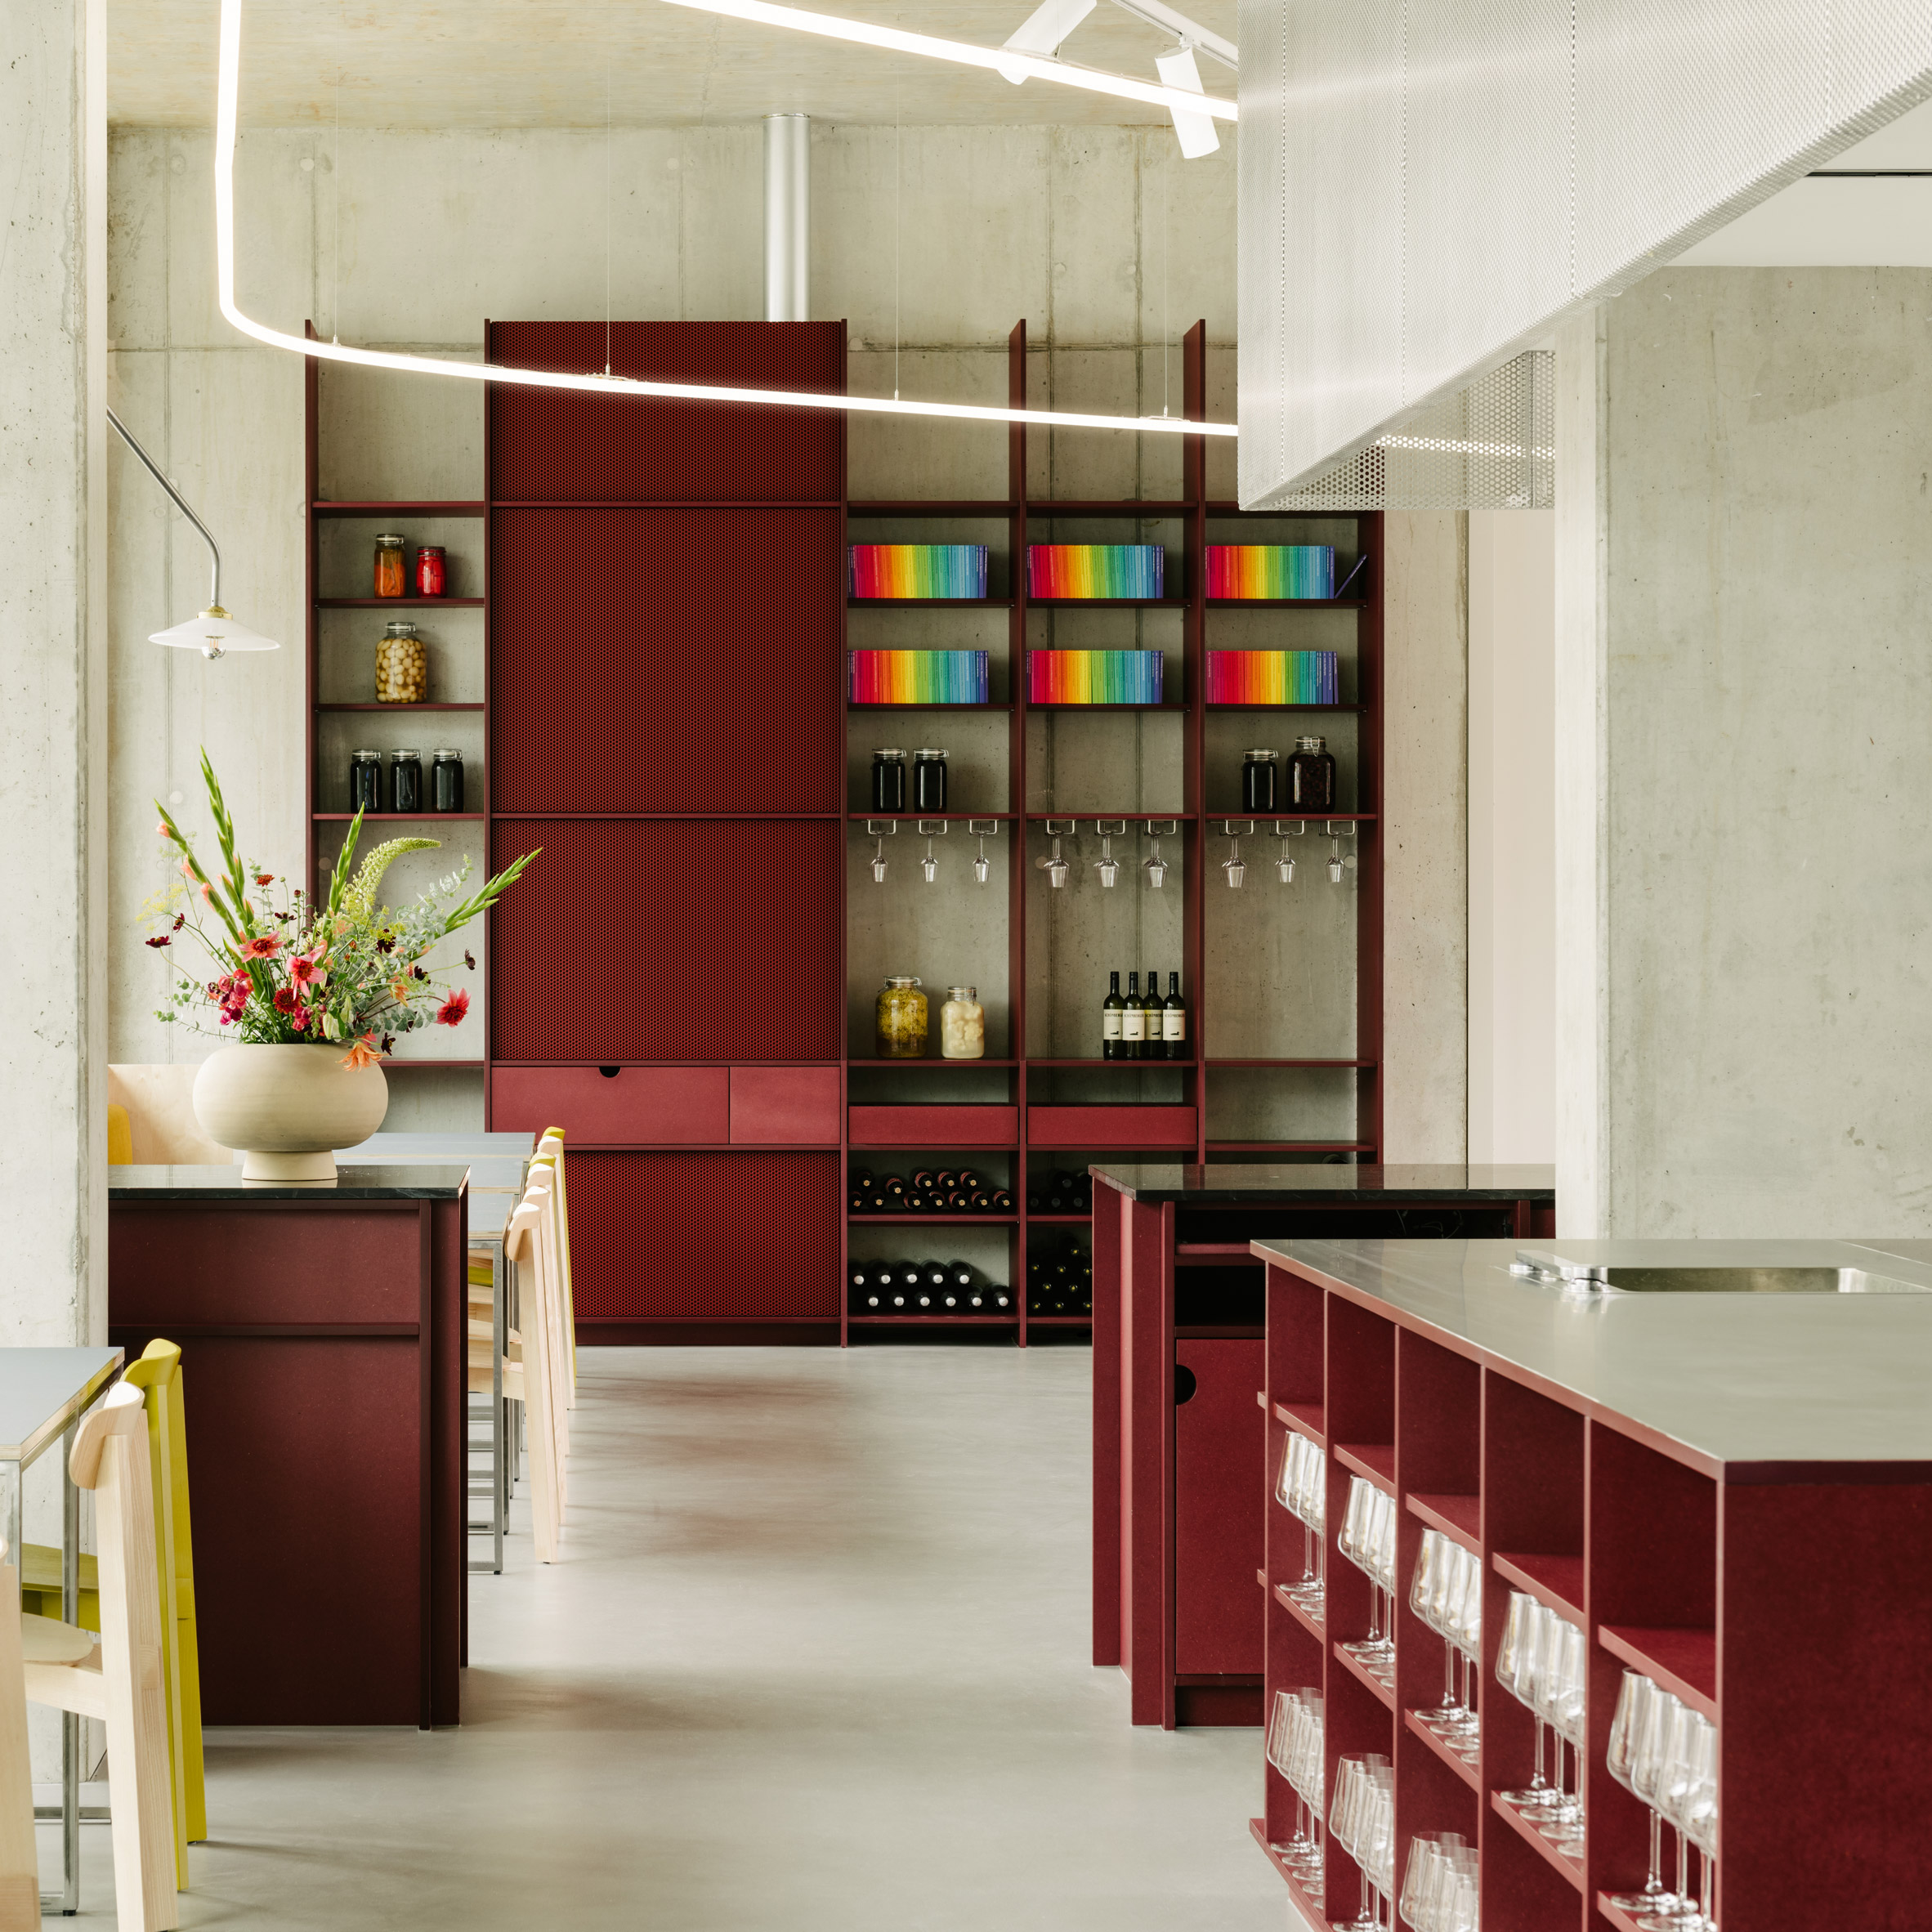 Interior Design Berlin Remi Restaurant In Berlin Is Defined By Cherry-red Joinery